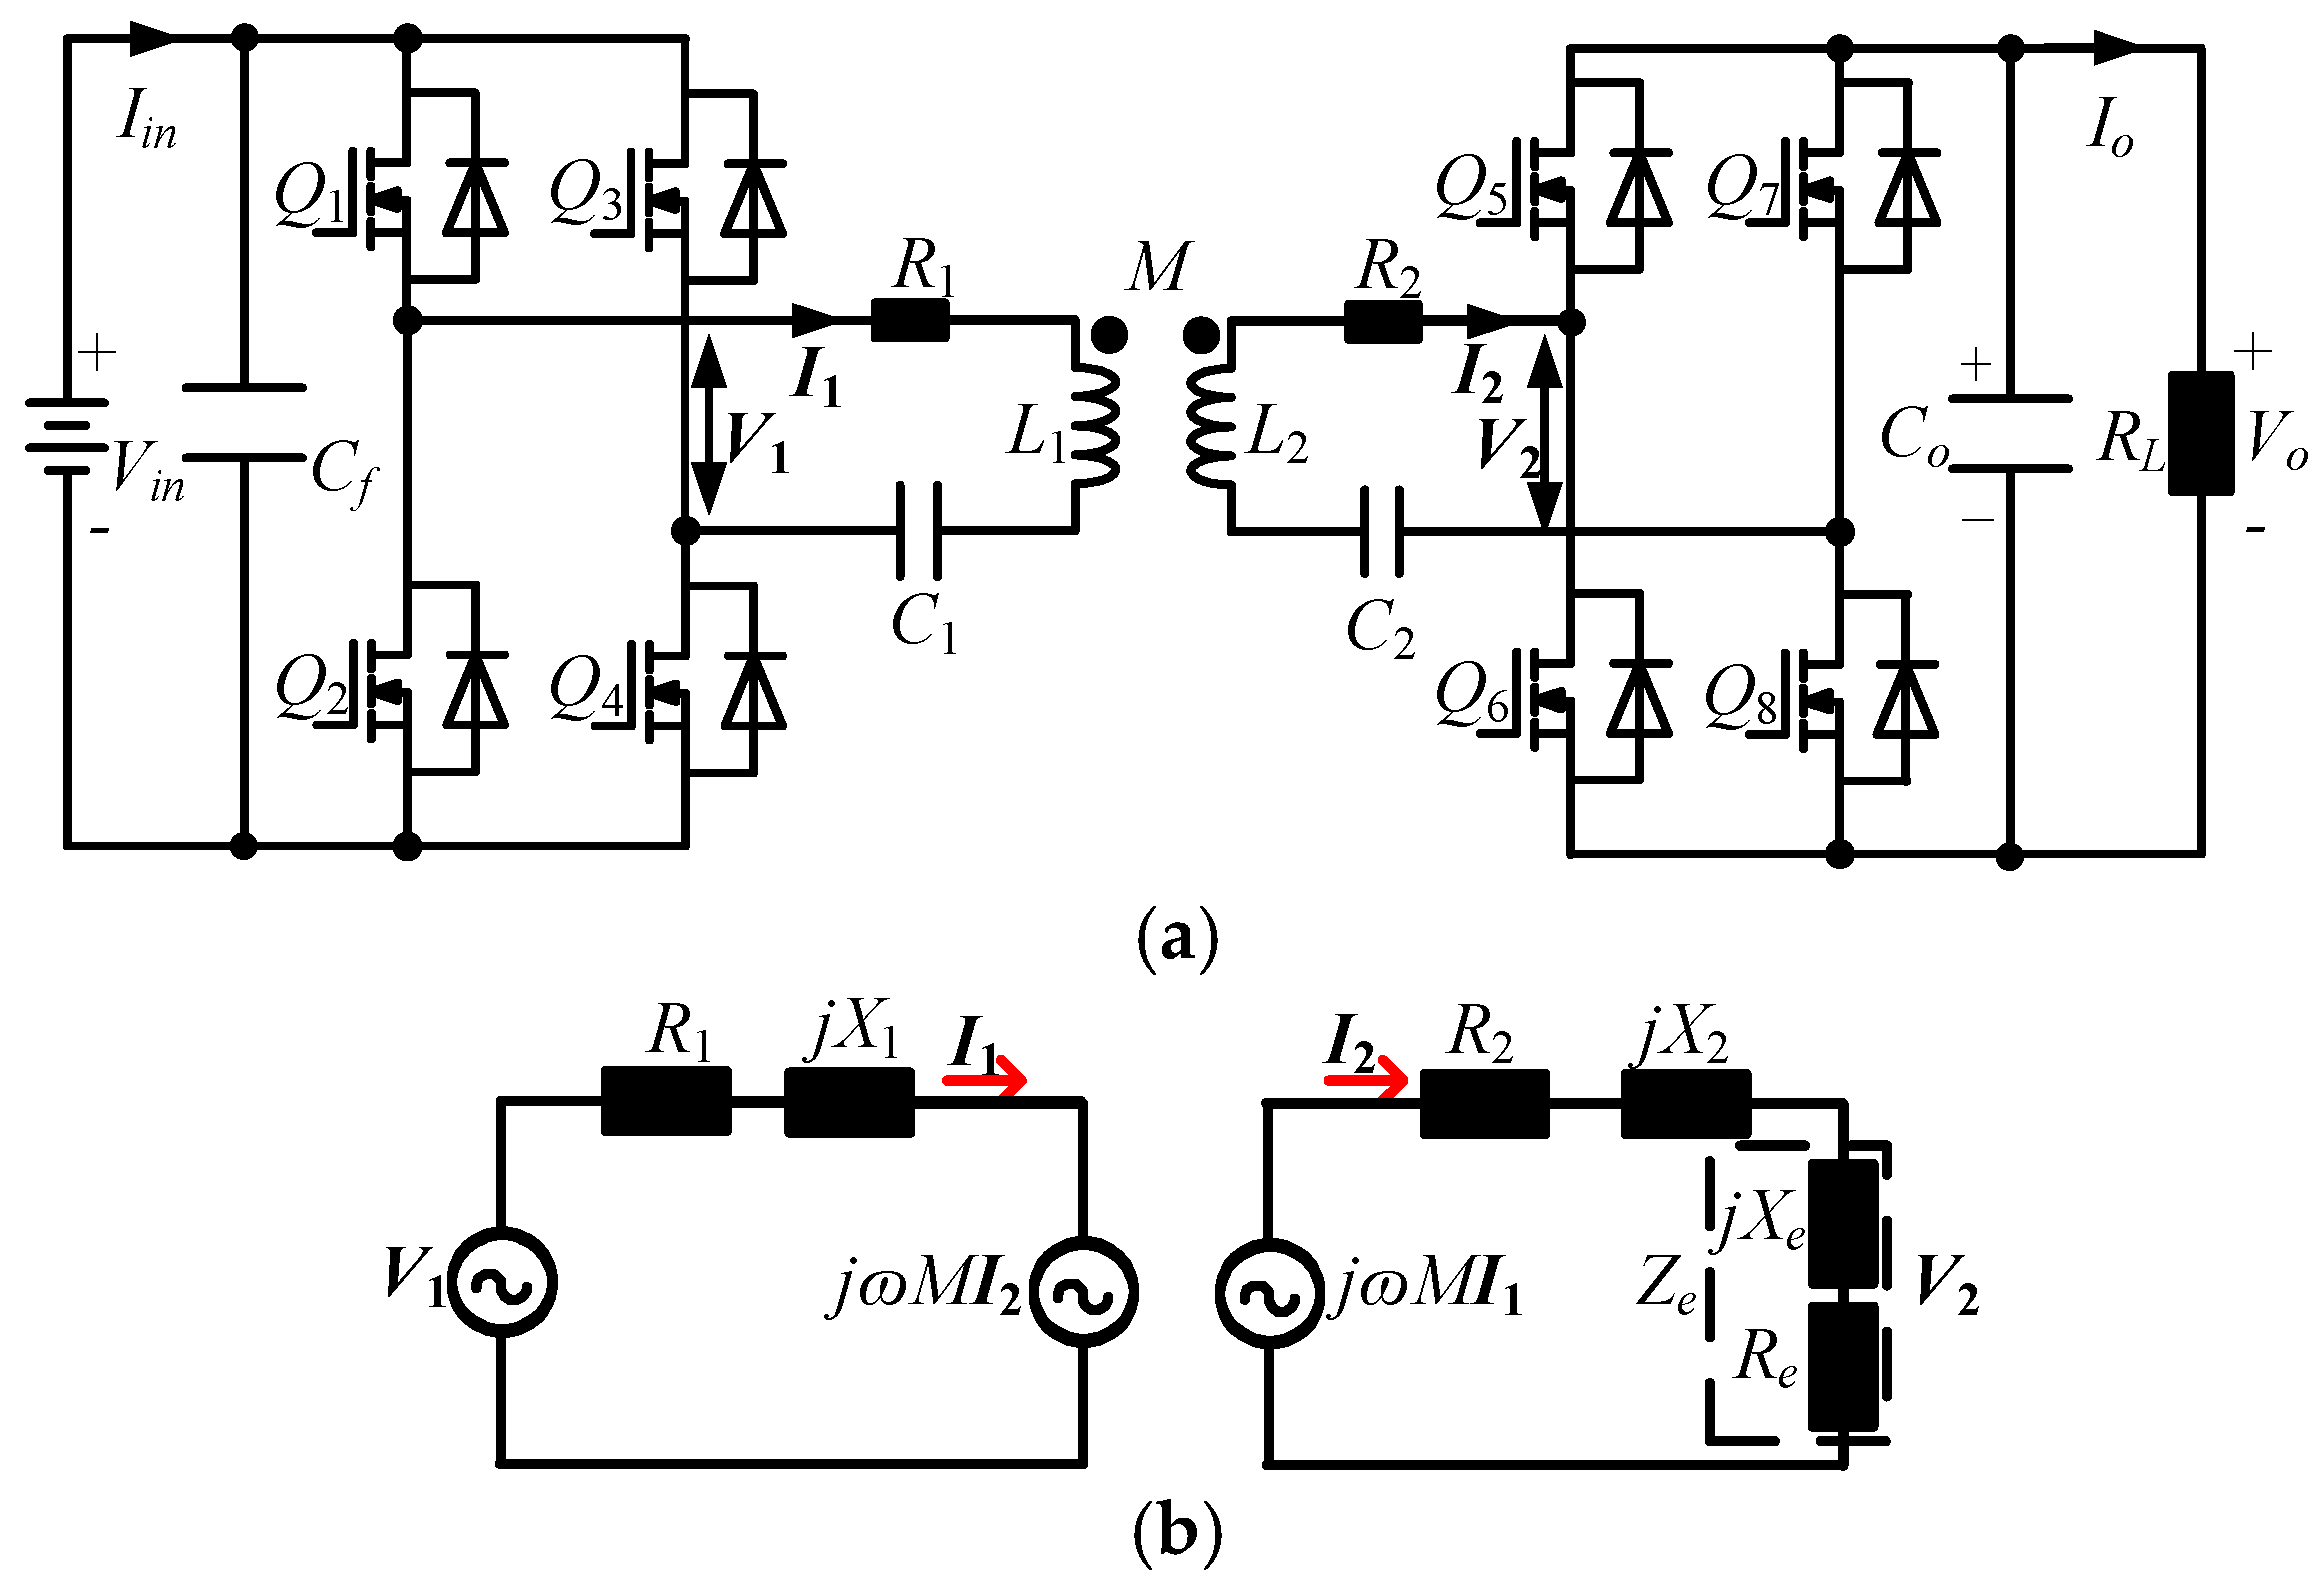 Energies Free Full Text Analysis And Design Of A Wireless Power Hv 317 Mosfet Voltage Regulator Circuits Images Frompo 10 01588 G001